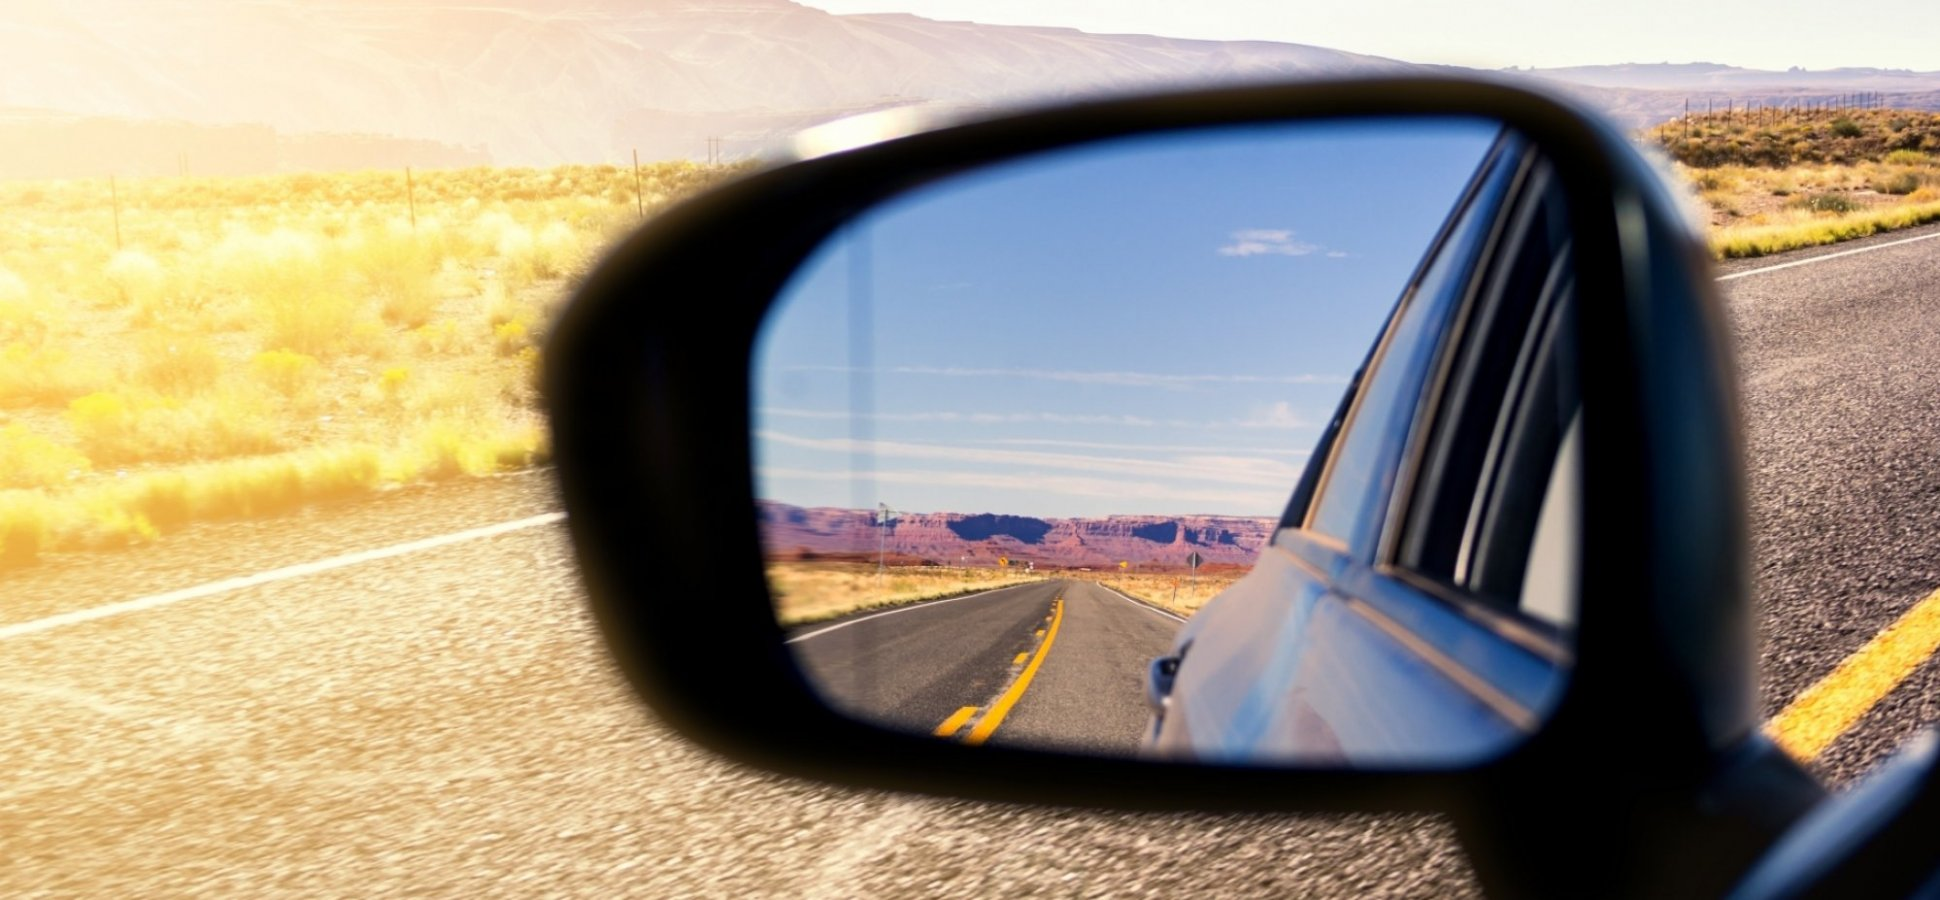 Want to Keep Your Career on Track? Avoid These 7 Common Leadership Blind Spots